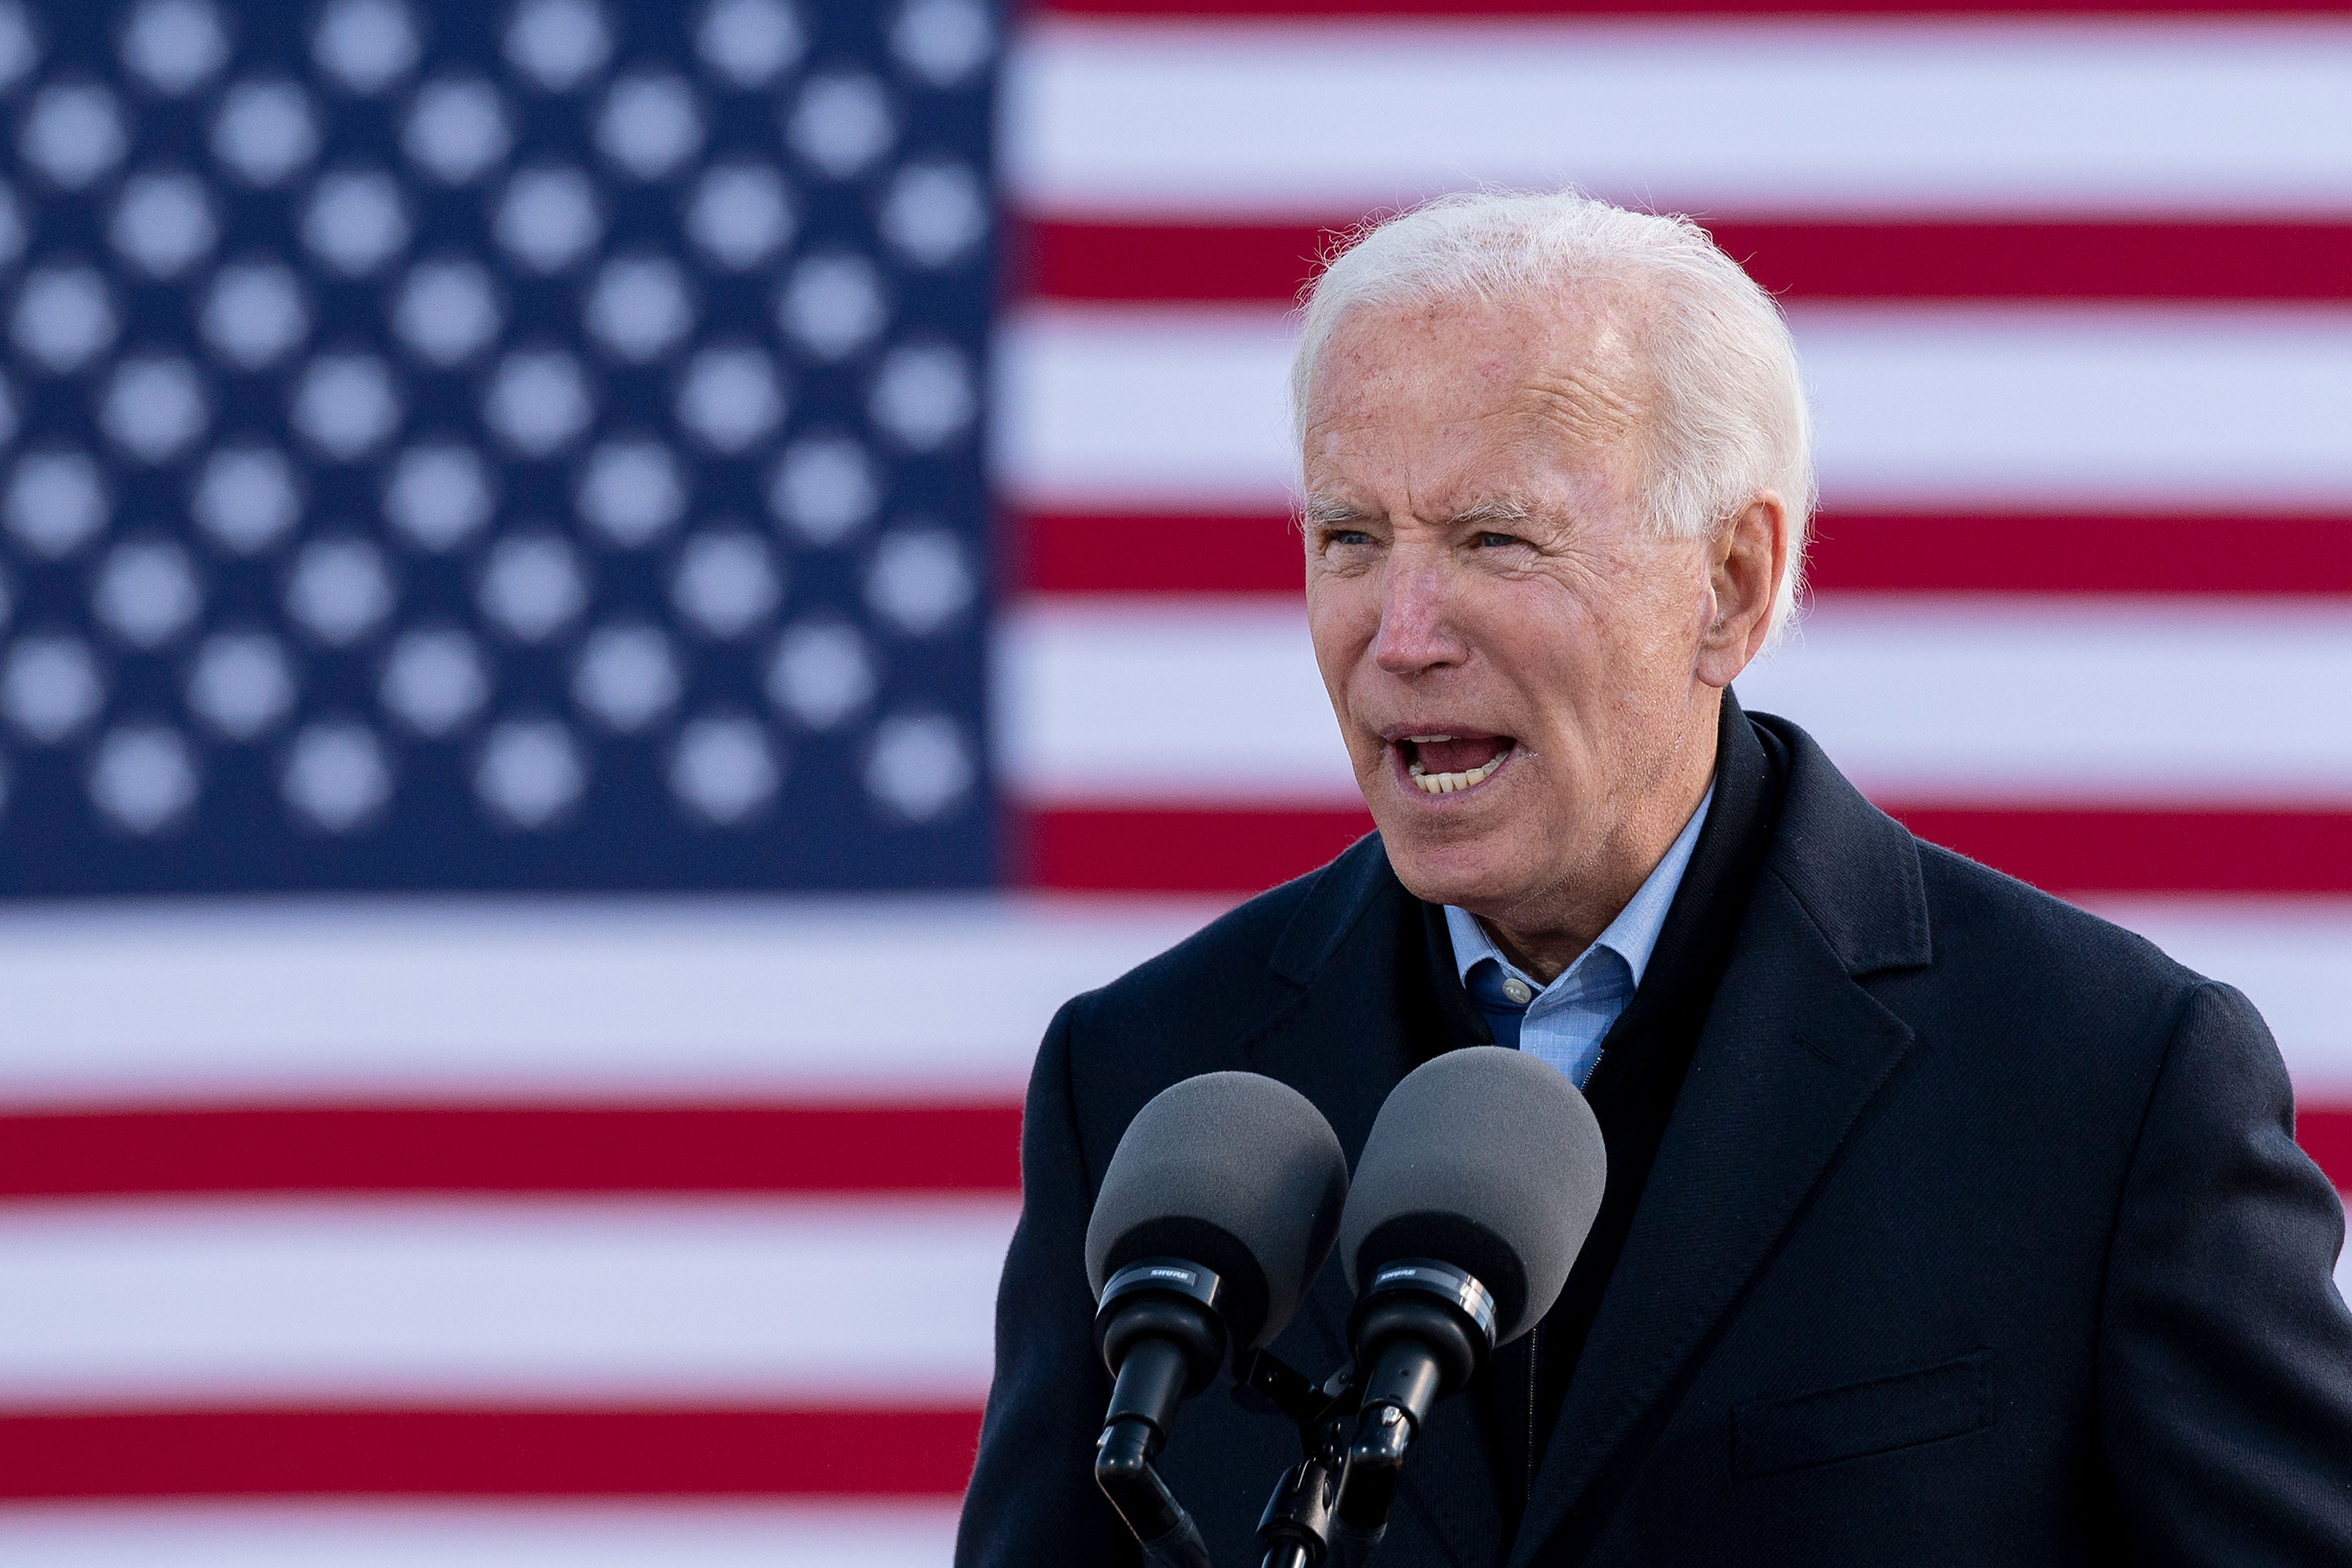 Joe Biden speaks during a drive-in campaign event at the Iowa State Fairgrounds in Des Moines, Iowa, on October 30.